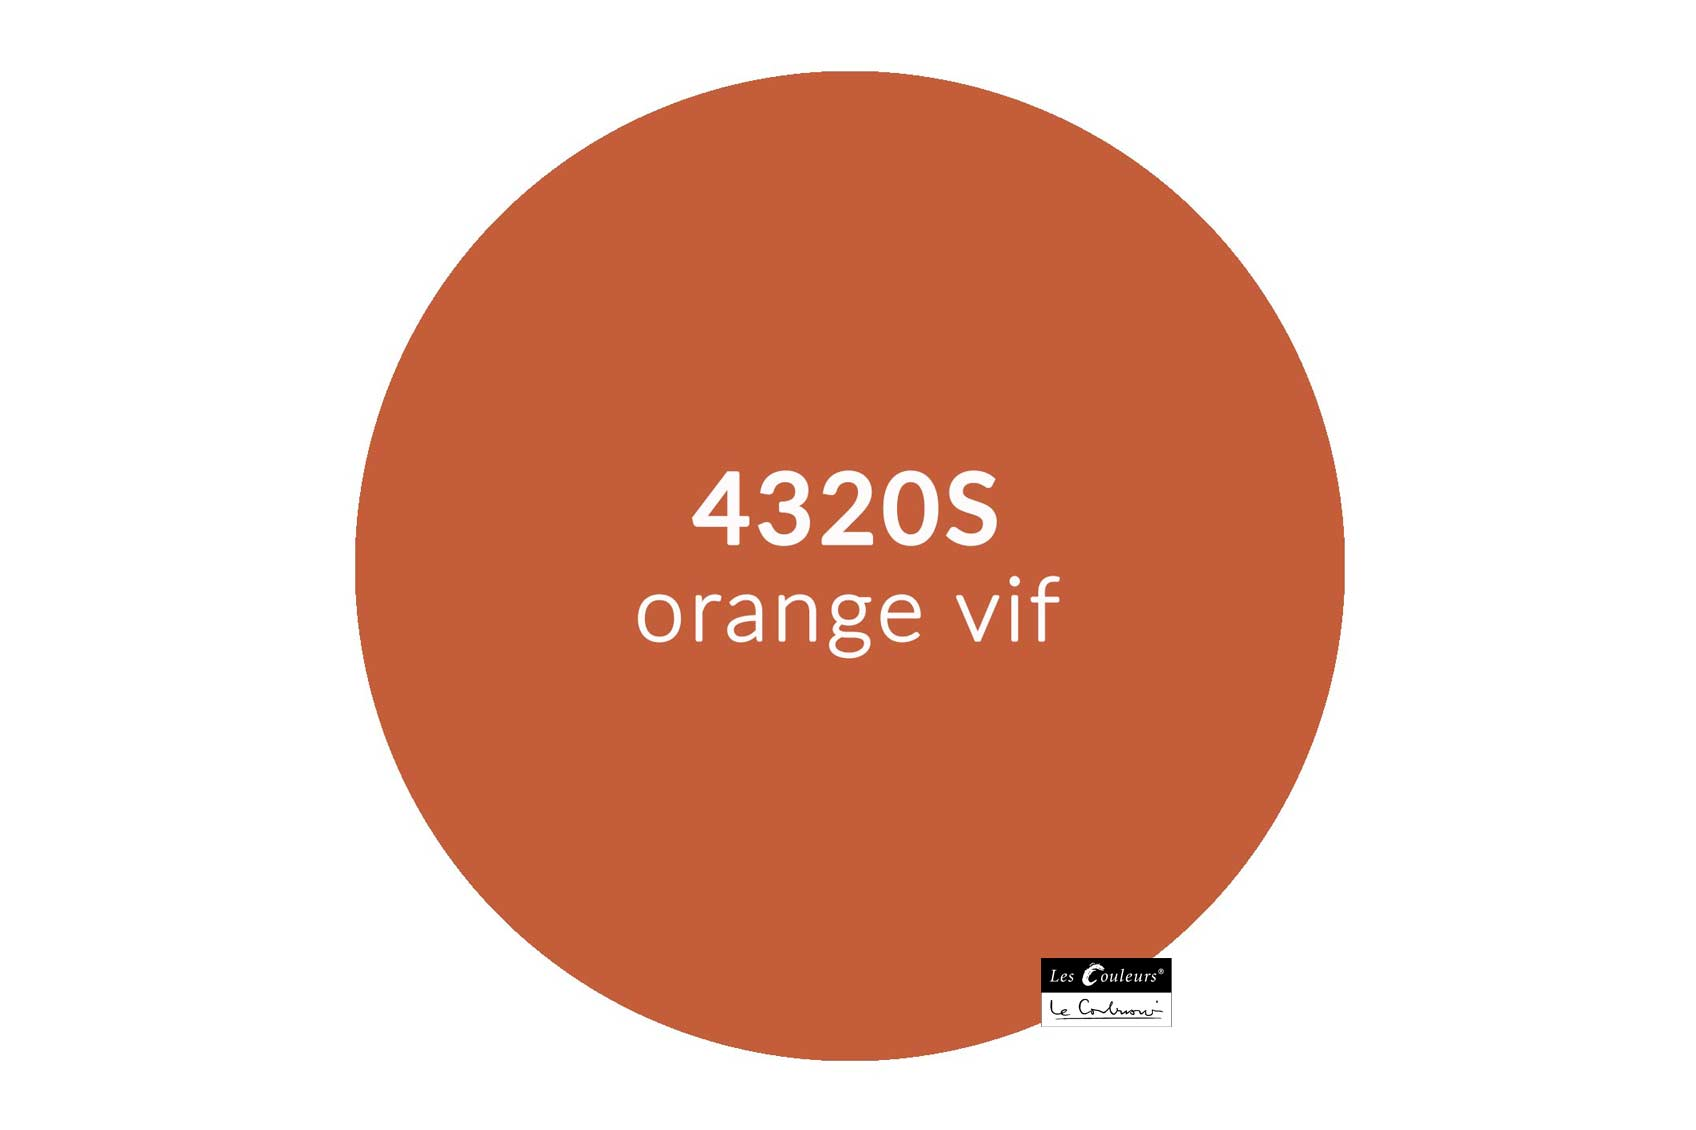 ©Les Couleurs Le Corbusier - 4320S orange vif